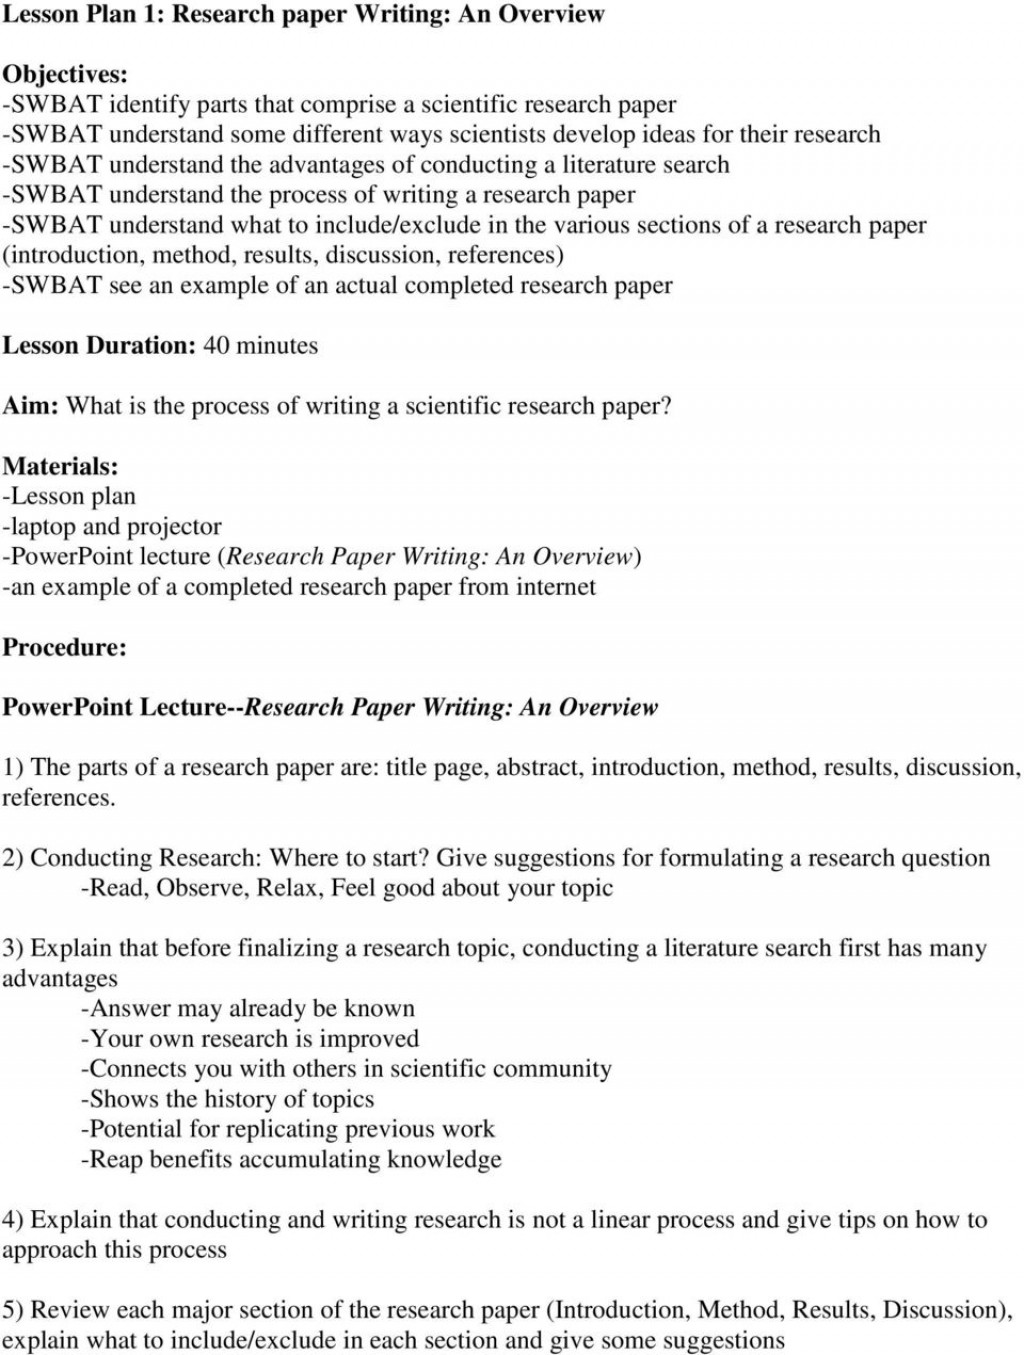 006 Page 1 Research Paper How To Write Results And Discussion Surprising In A Example Section Of Apa The Ppt Large